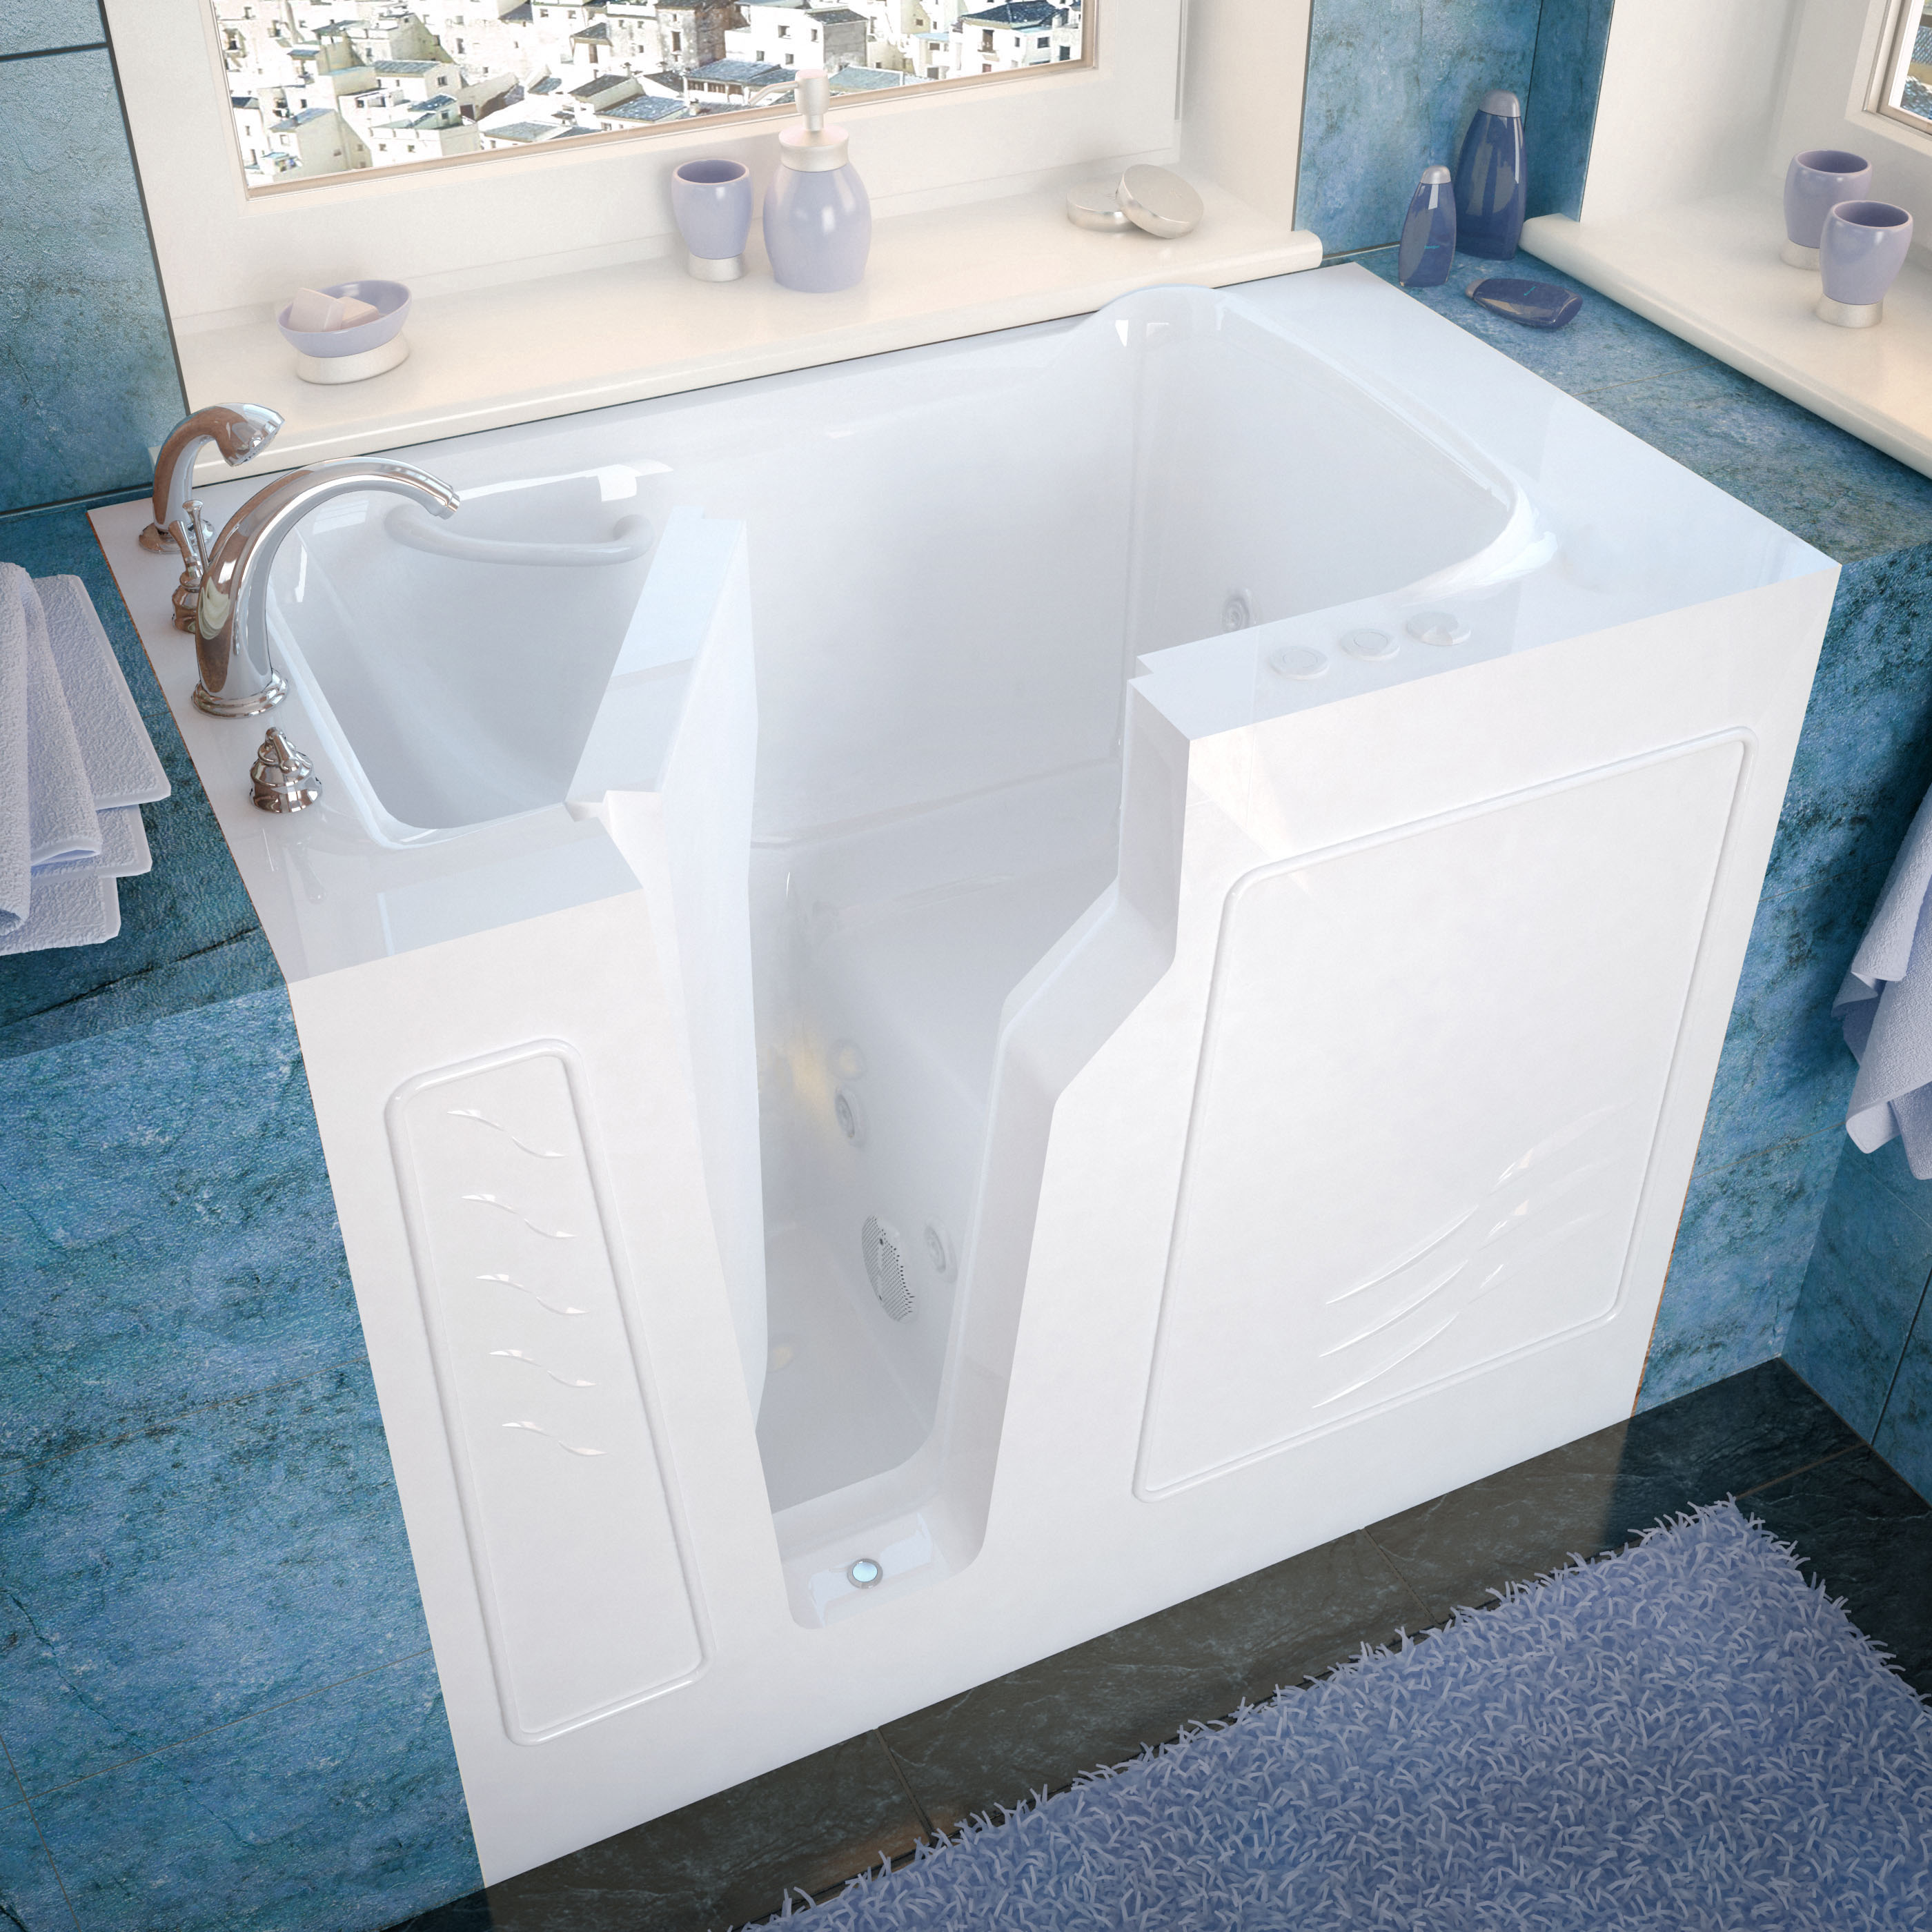 26x46 Left Drain White Whirlpool Jetted Walk-In Bathtub